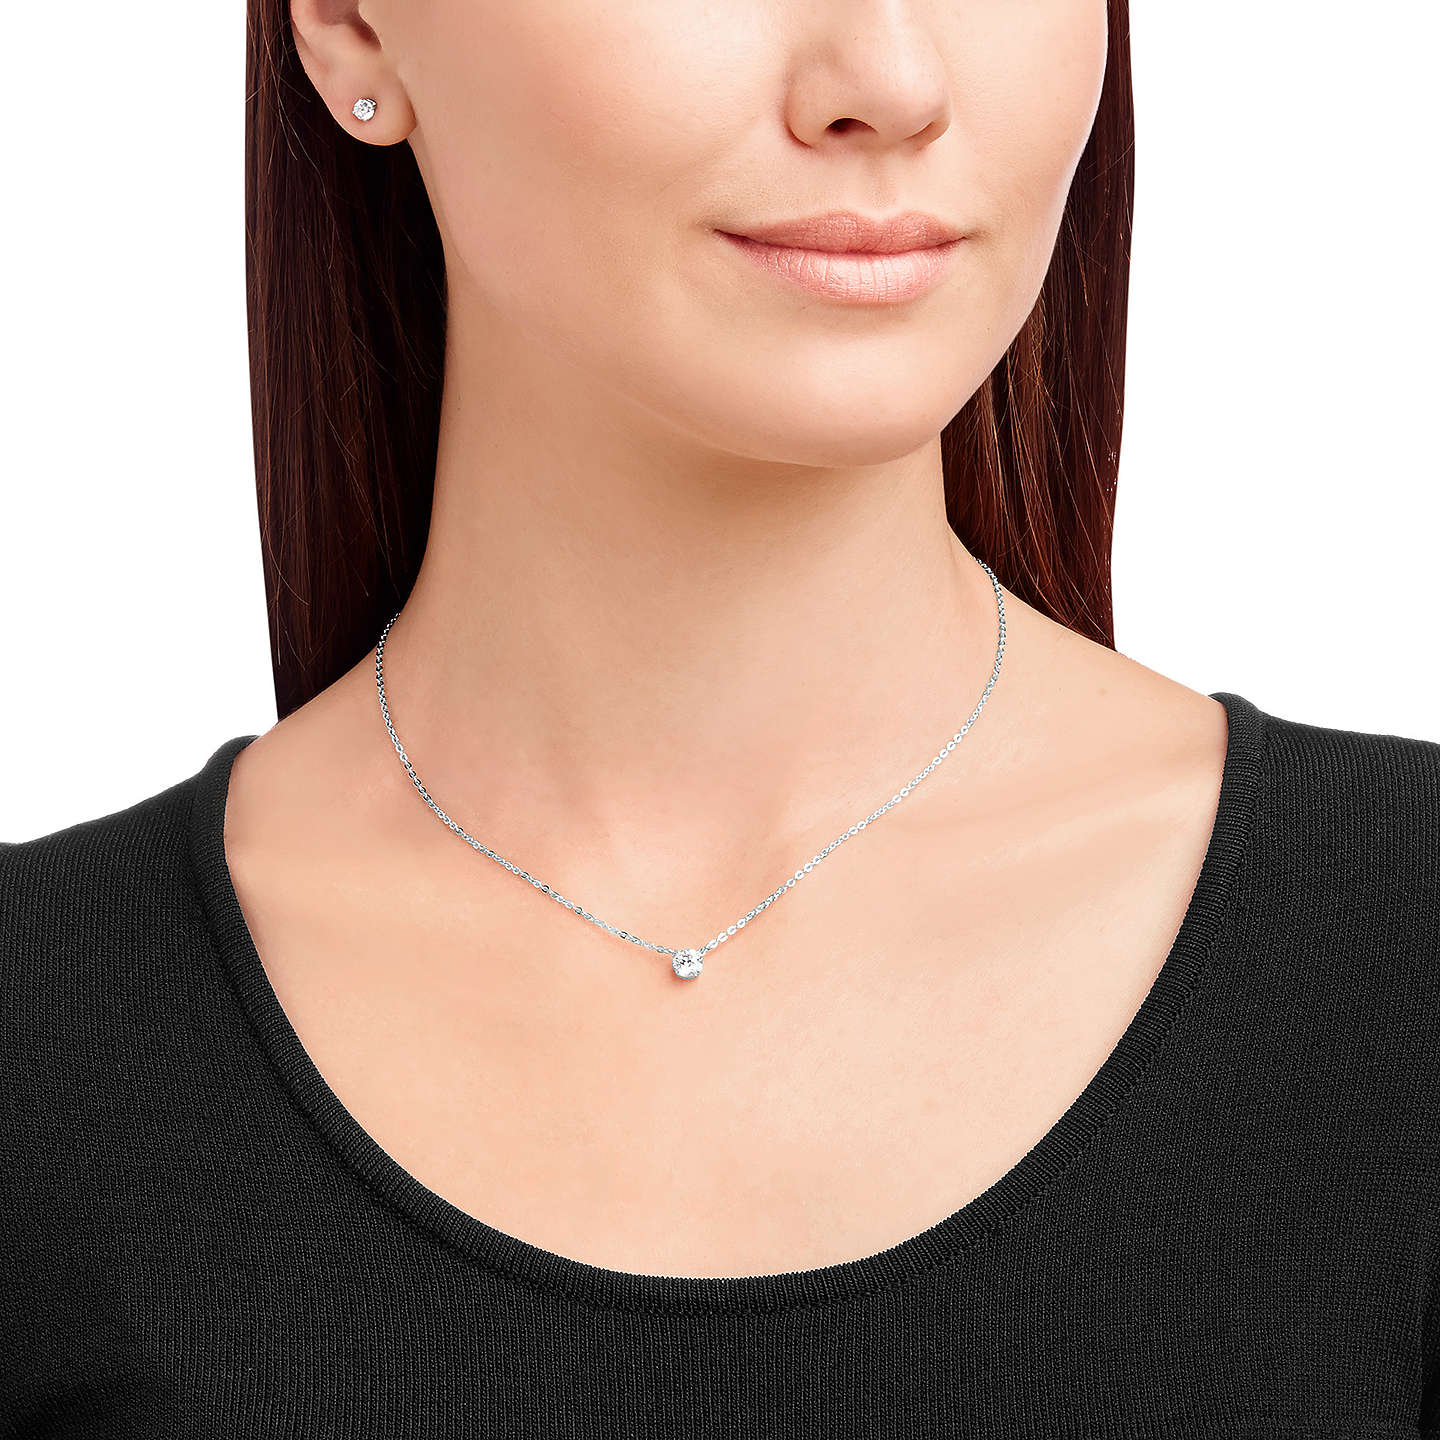 BuySwarovski Attract Round Crystal Pendant Necklace and Stud Earrings Jewellery Gift Set, Silver Online at johnlewis.com